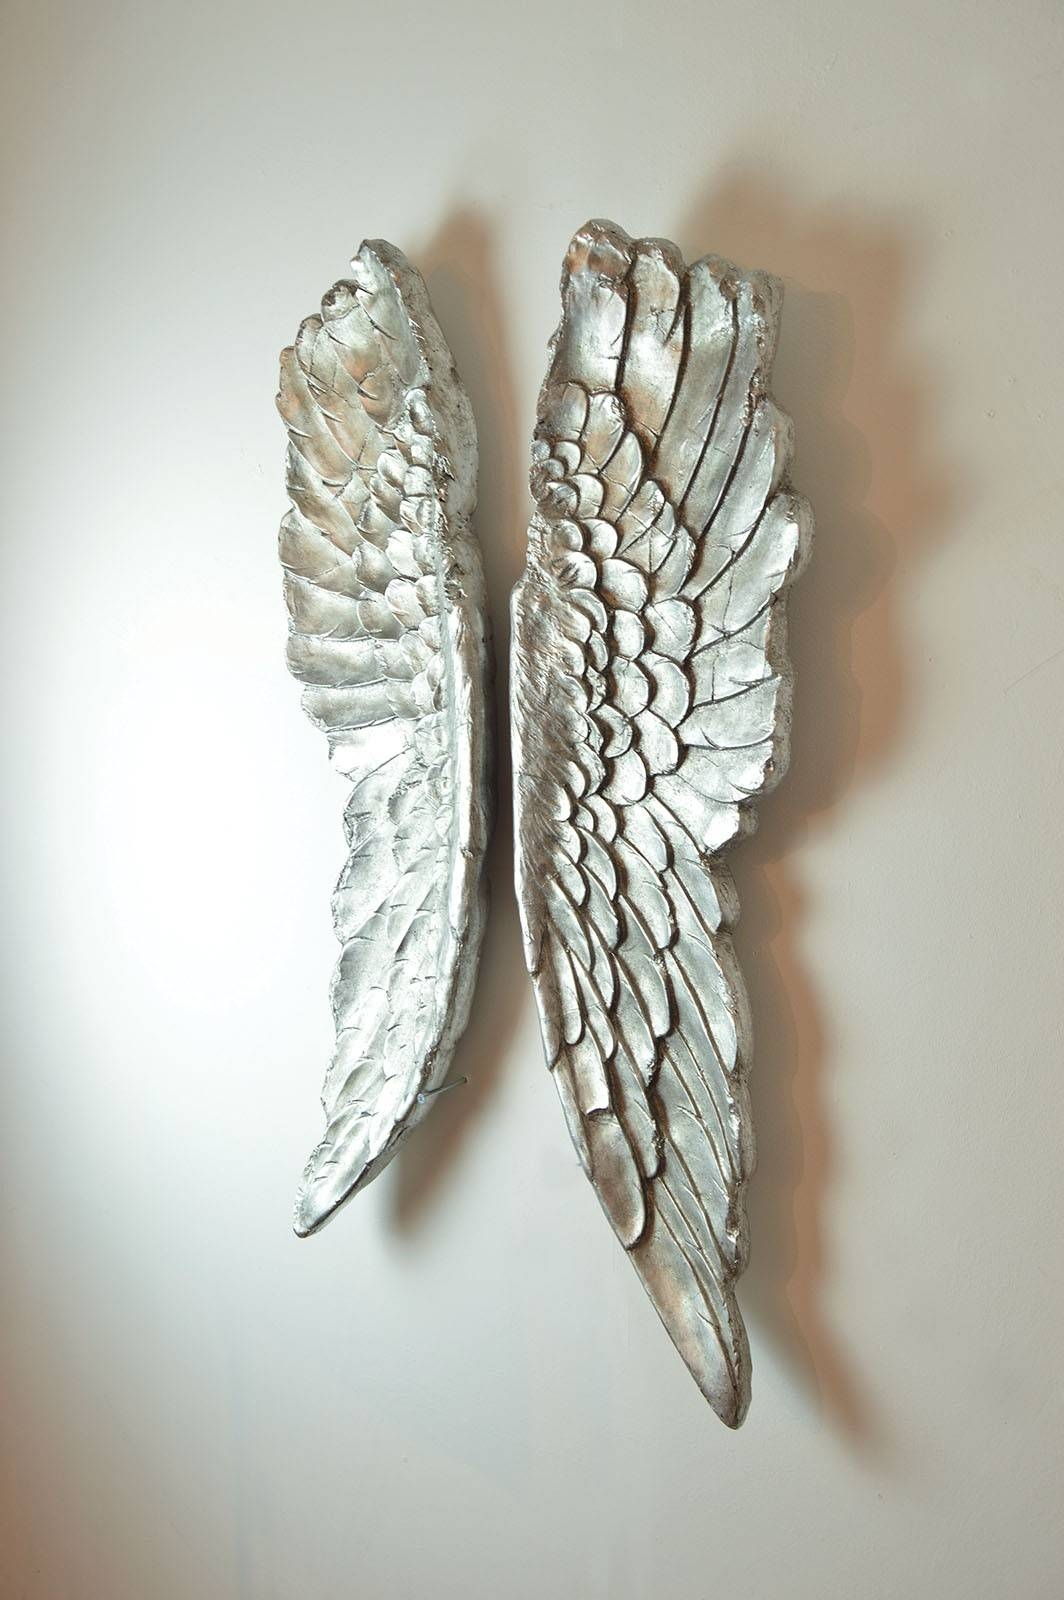 The Angel Wings Wall Decor : Garnish With Angel Wings Wall Decor Throughout Most Popular Angel Wings Wall Art (View 4 of 20)